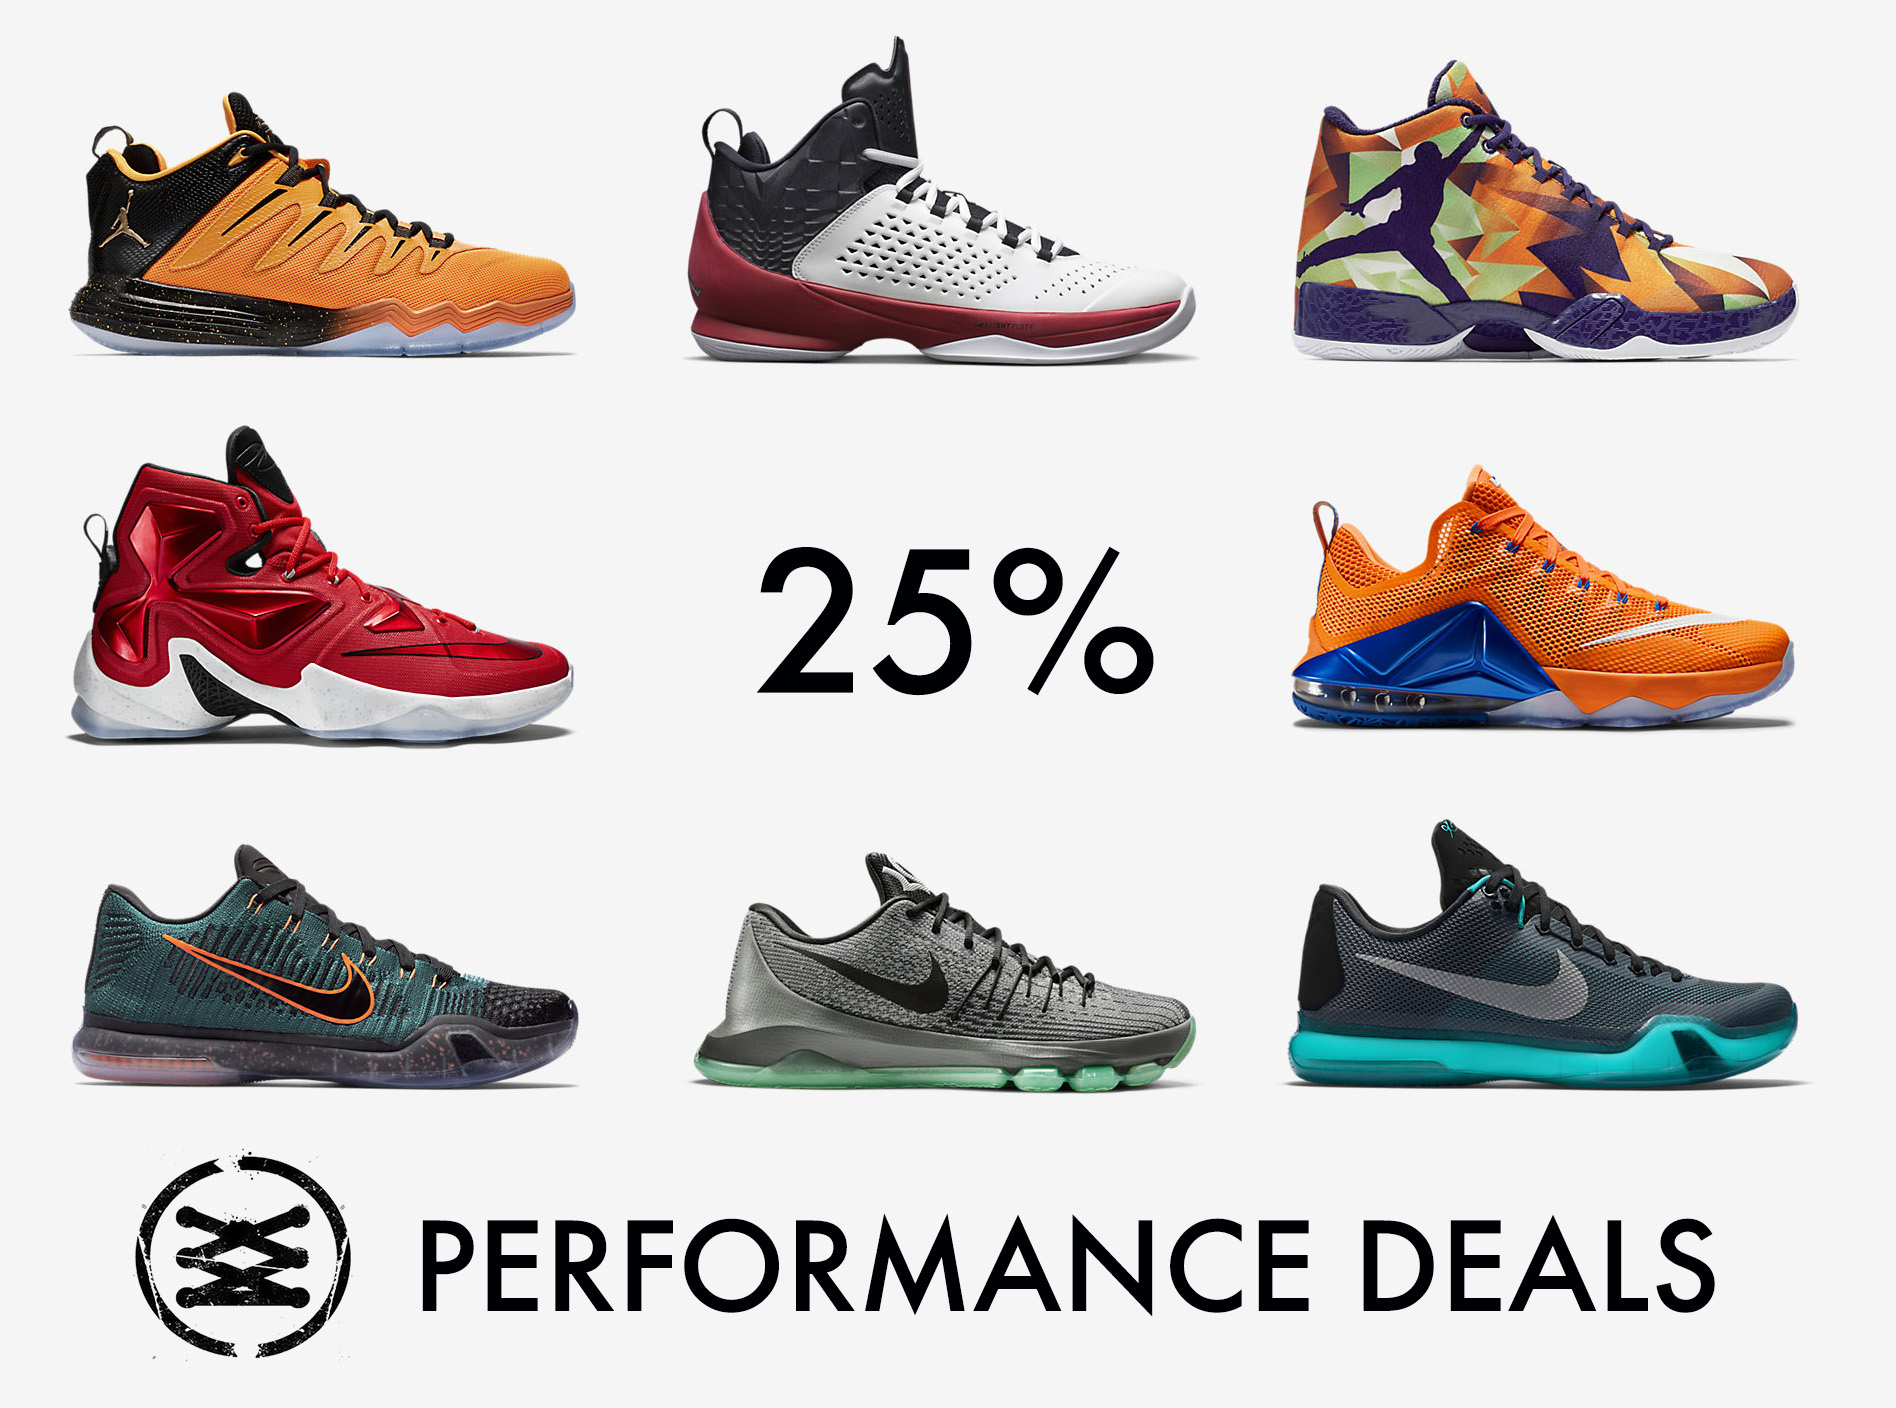 Performance Deals: 25% Off Clearance Basketball Shoes at Nike